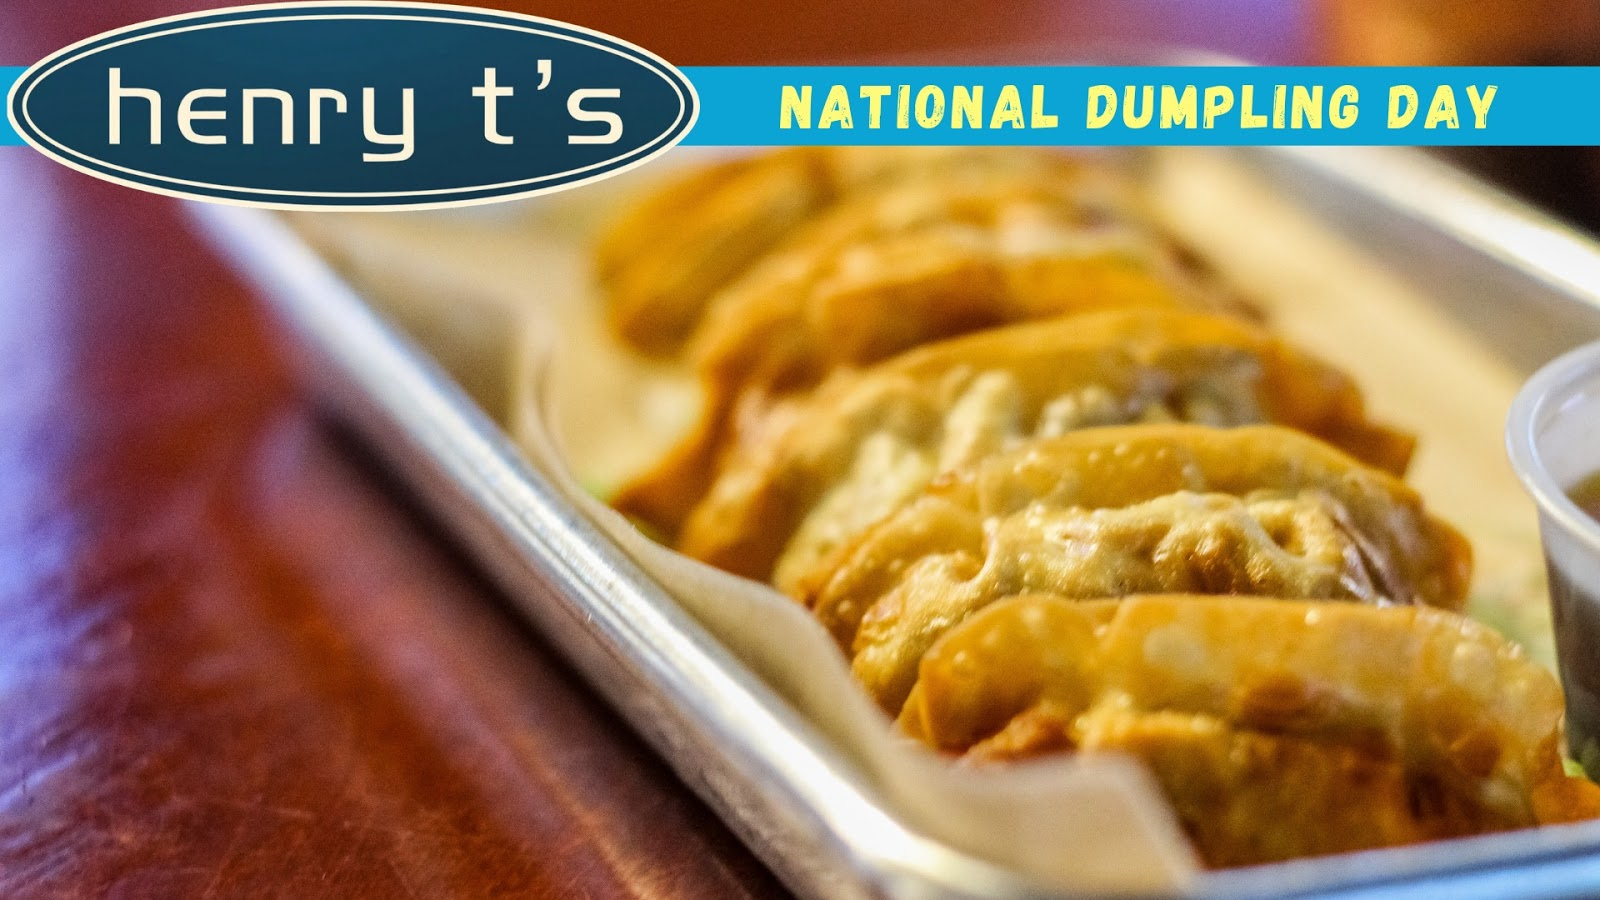 National Dumpling Day Wishes pics free download